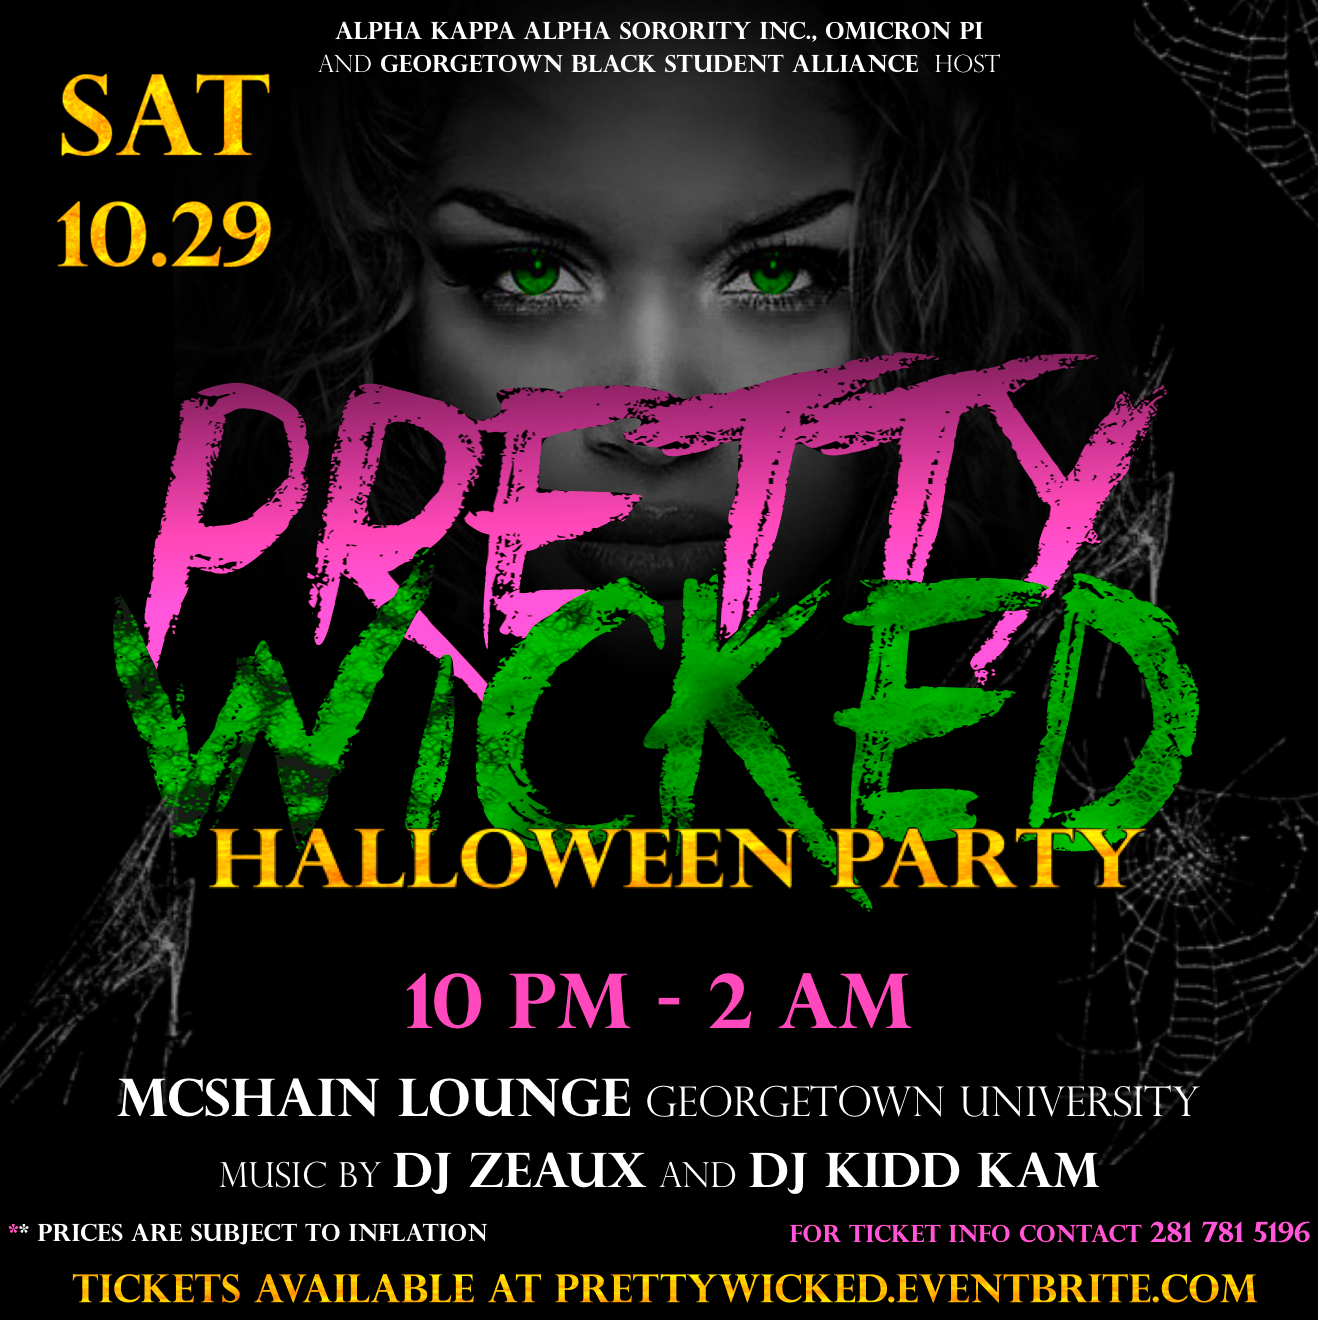 Pretty Wicked Halloween Party Tickets, Sat, Oct 29, 2016 at 10:00 ...